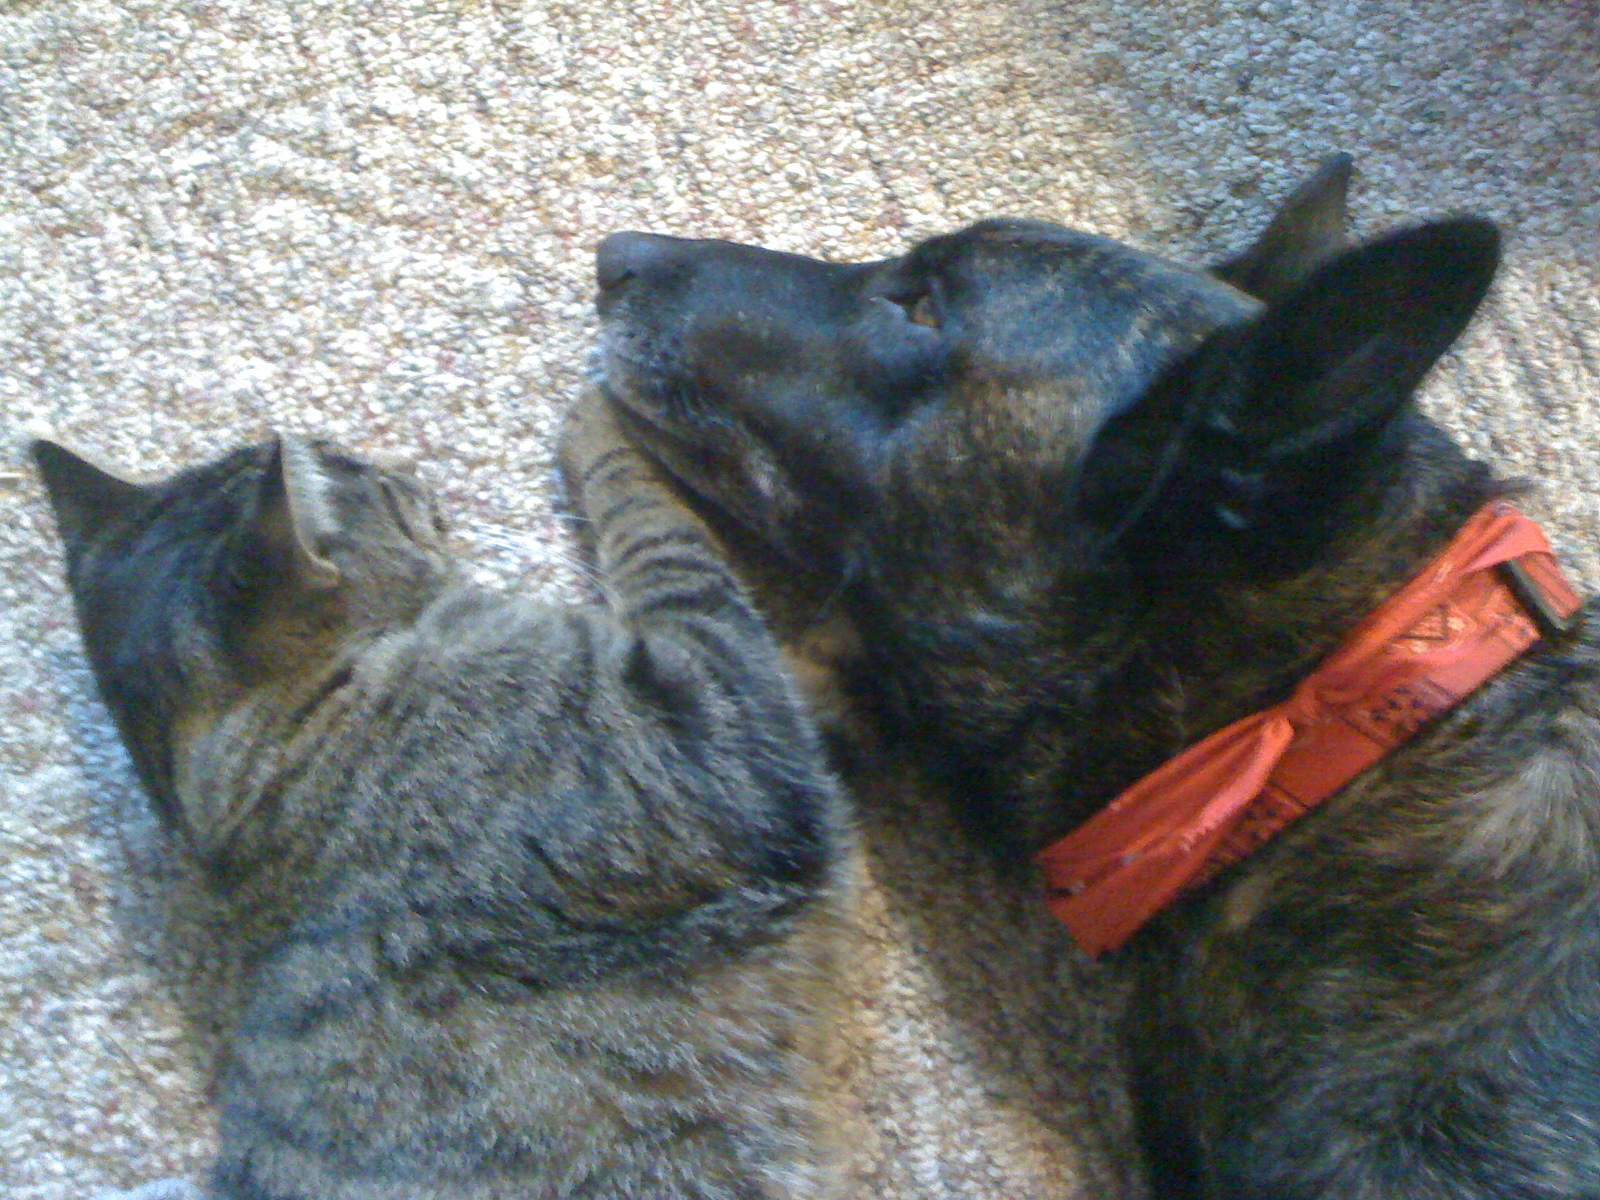 Buttercup the Dutch Shepherd with Tiger, photo by Kyle Rives